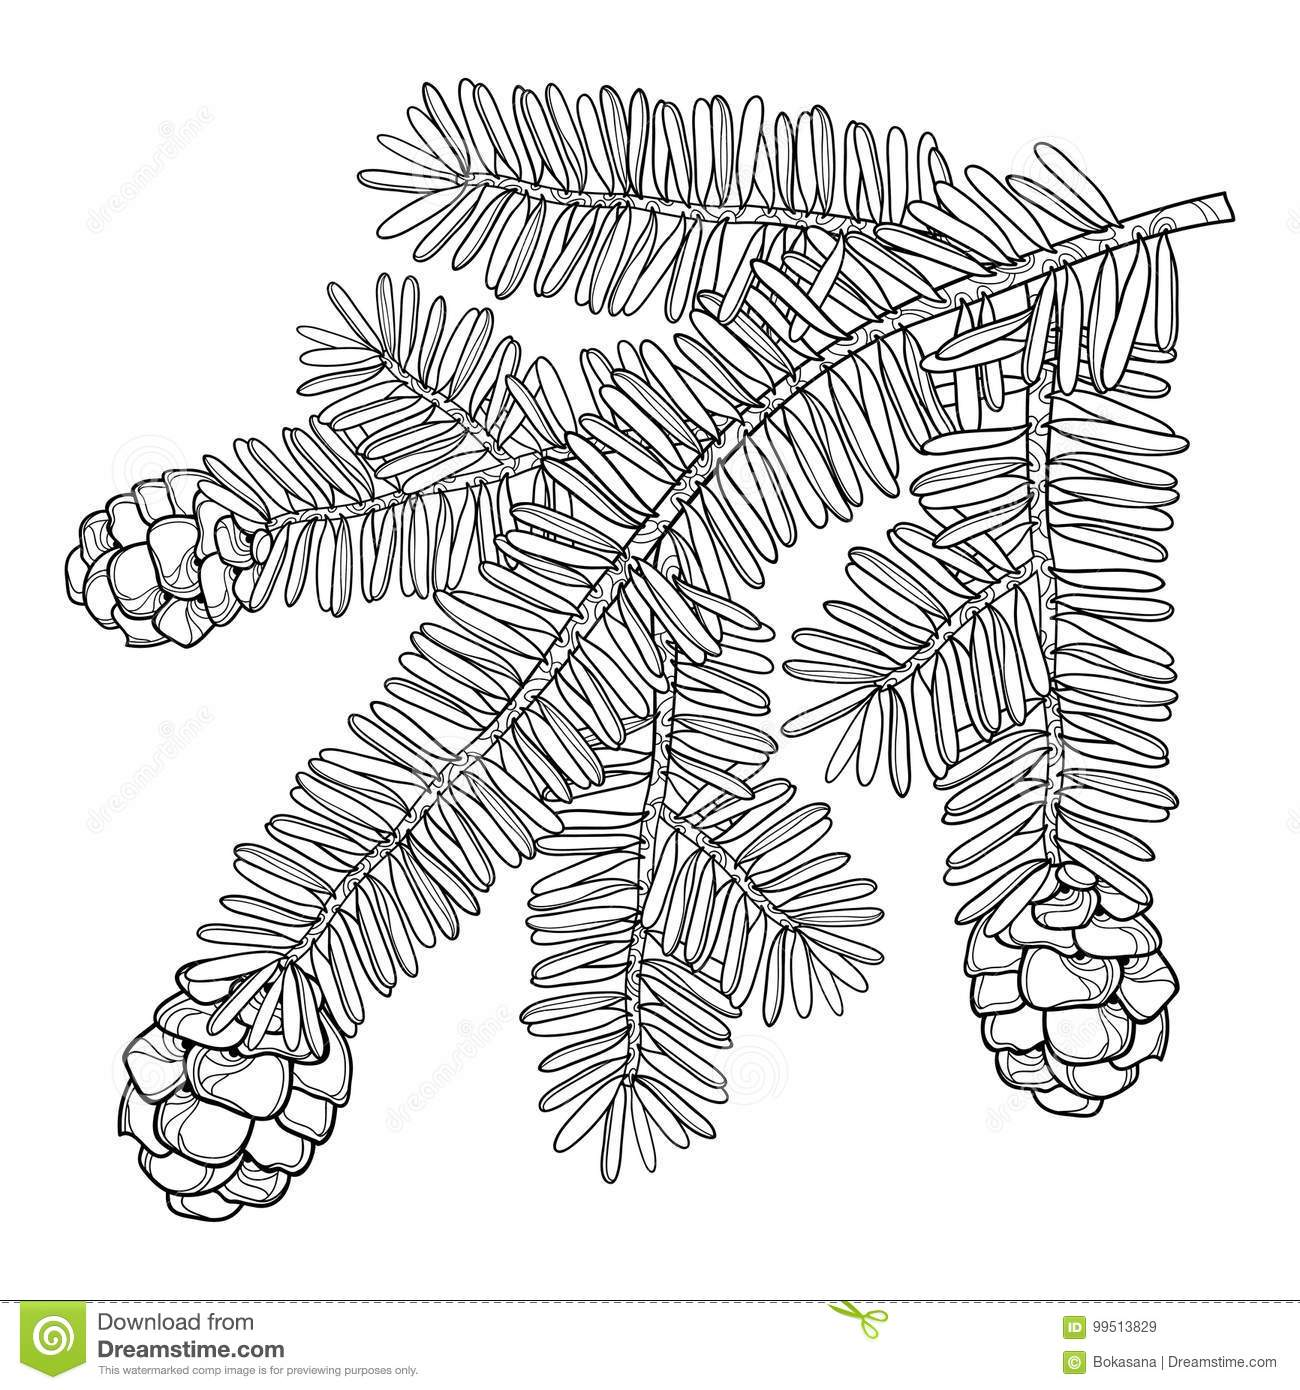 Canadian Evergreen Tree Pine Sketch Cartoon Vector